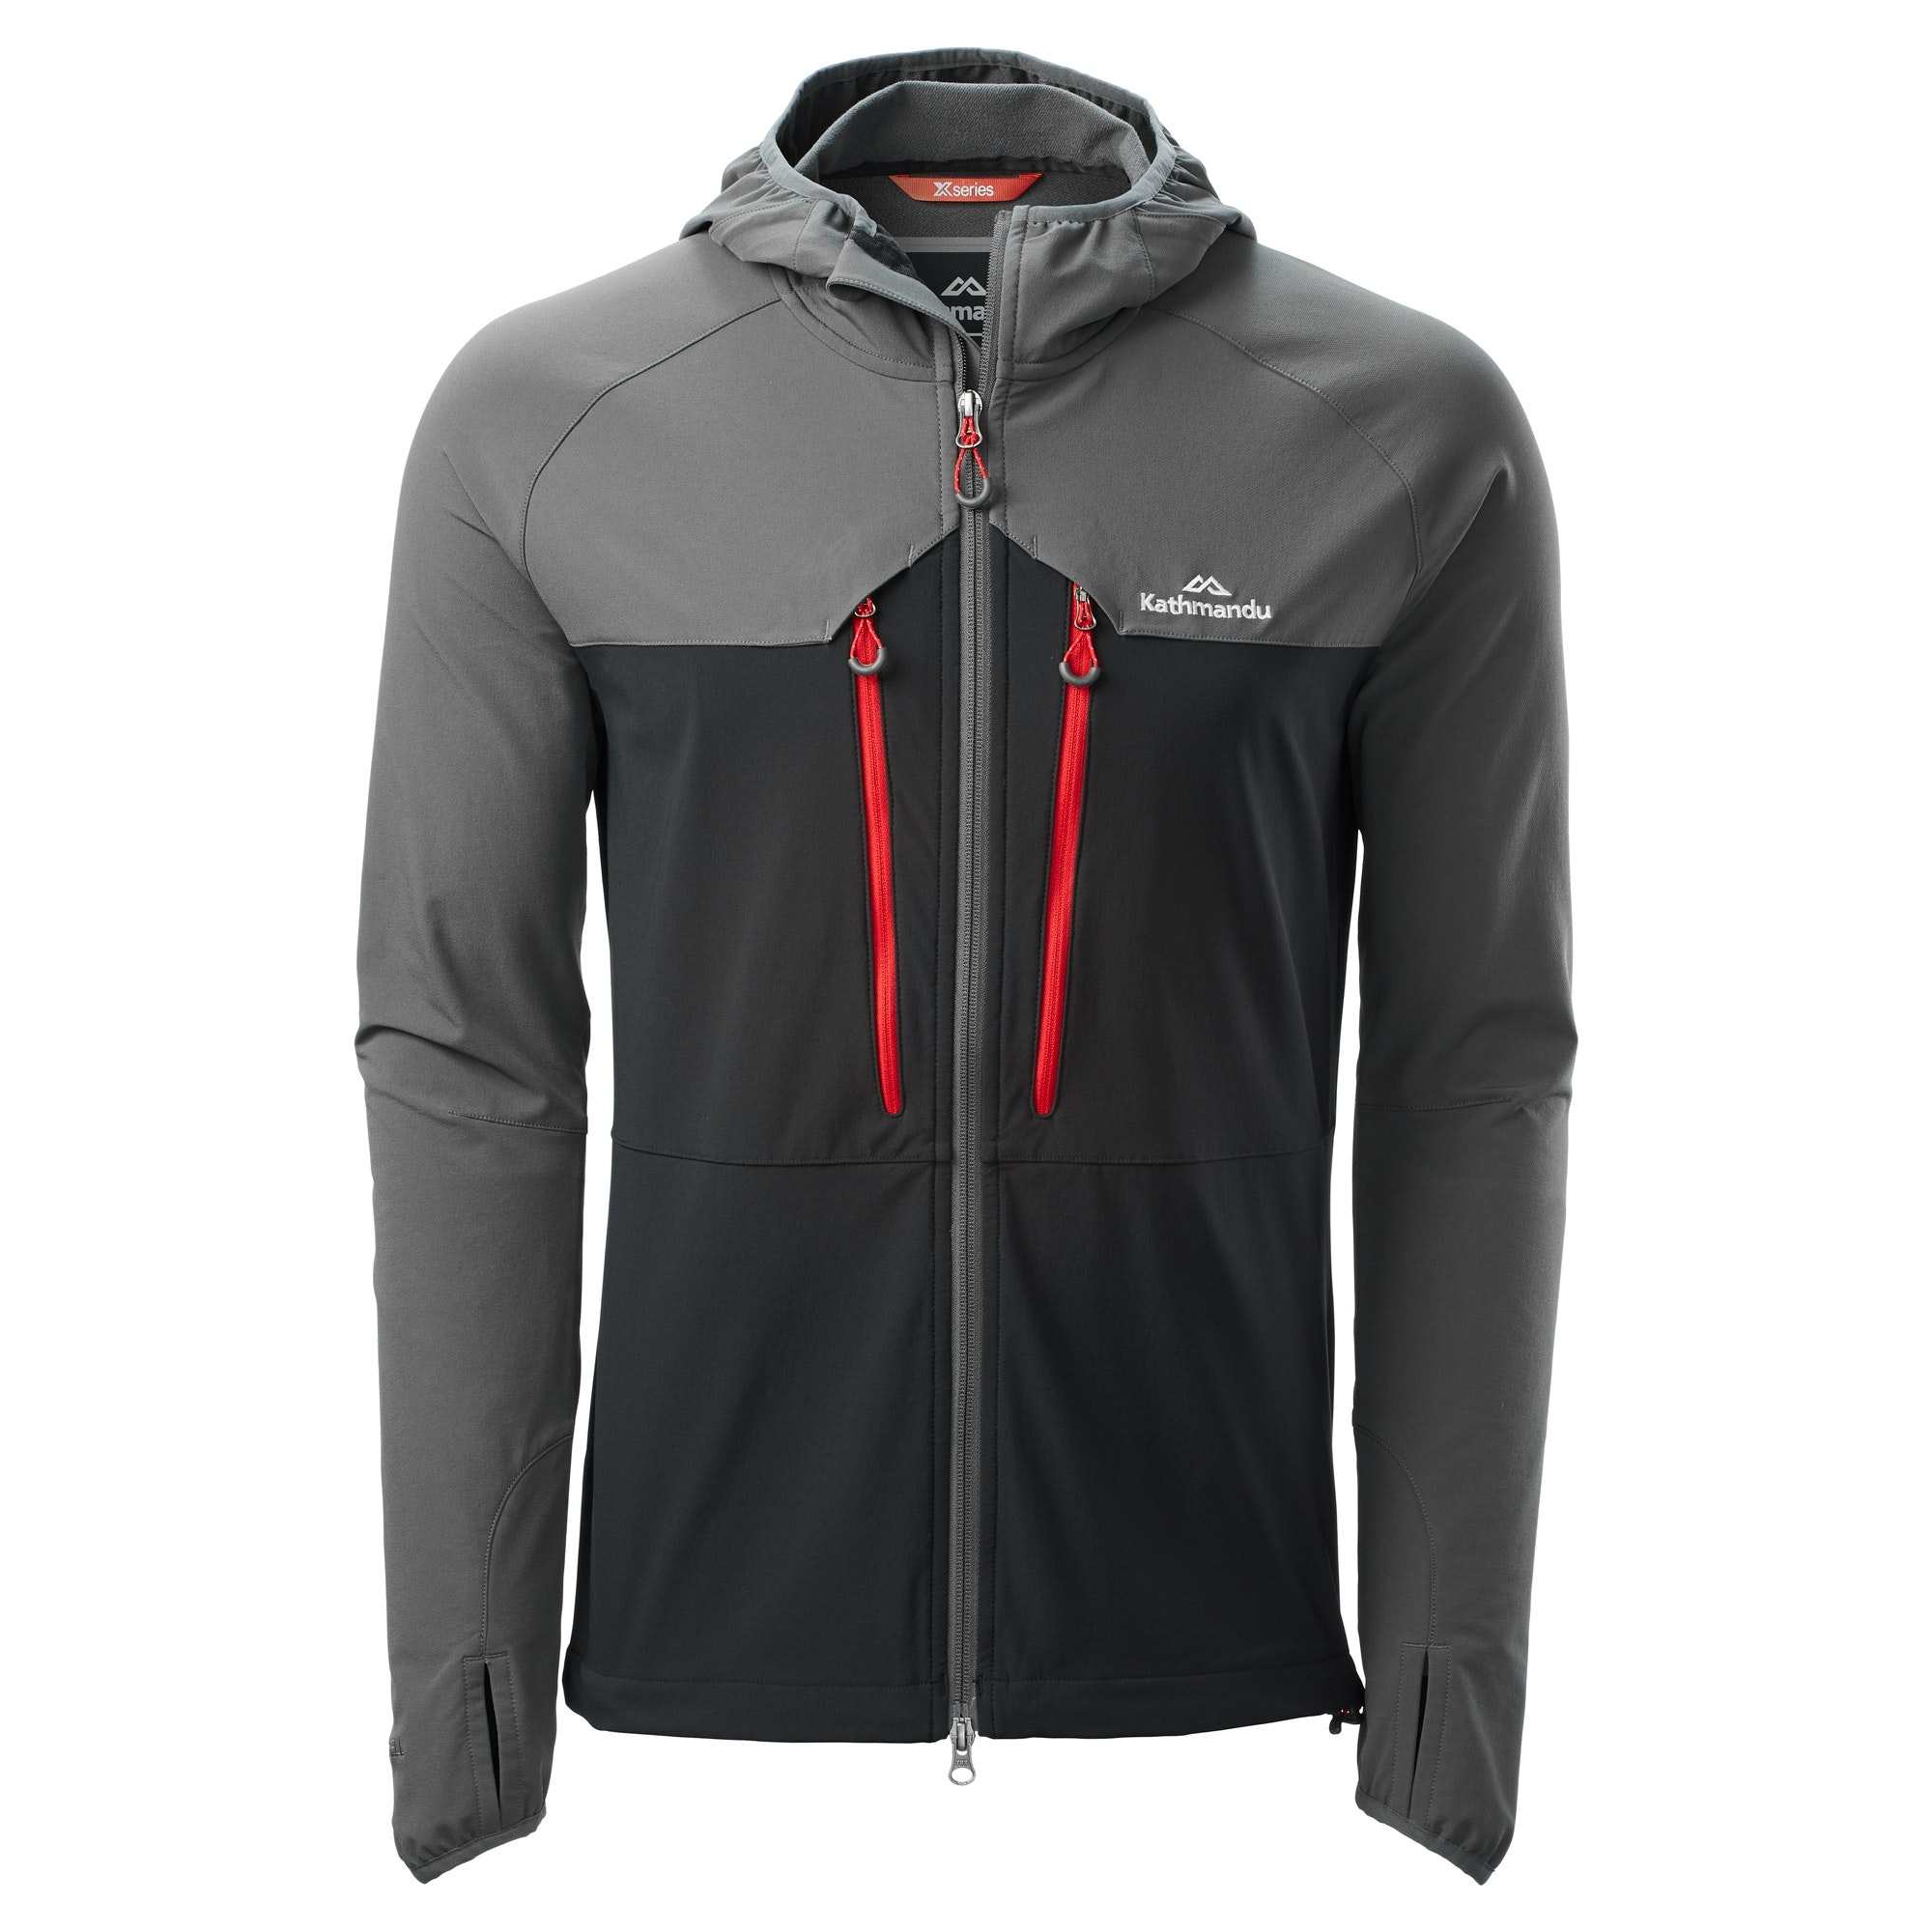 8ec9fea54c8c Wind and light rain protection. The XT Series Terrno Jacket ...